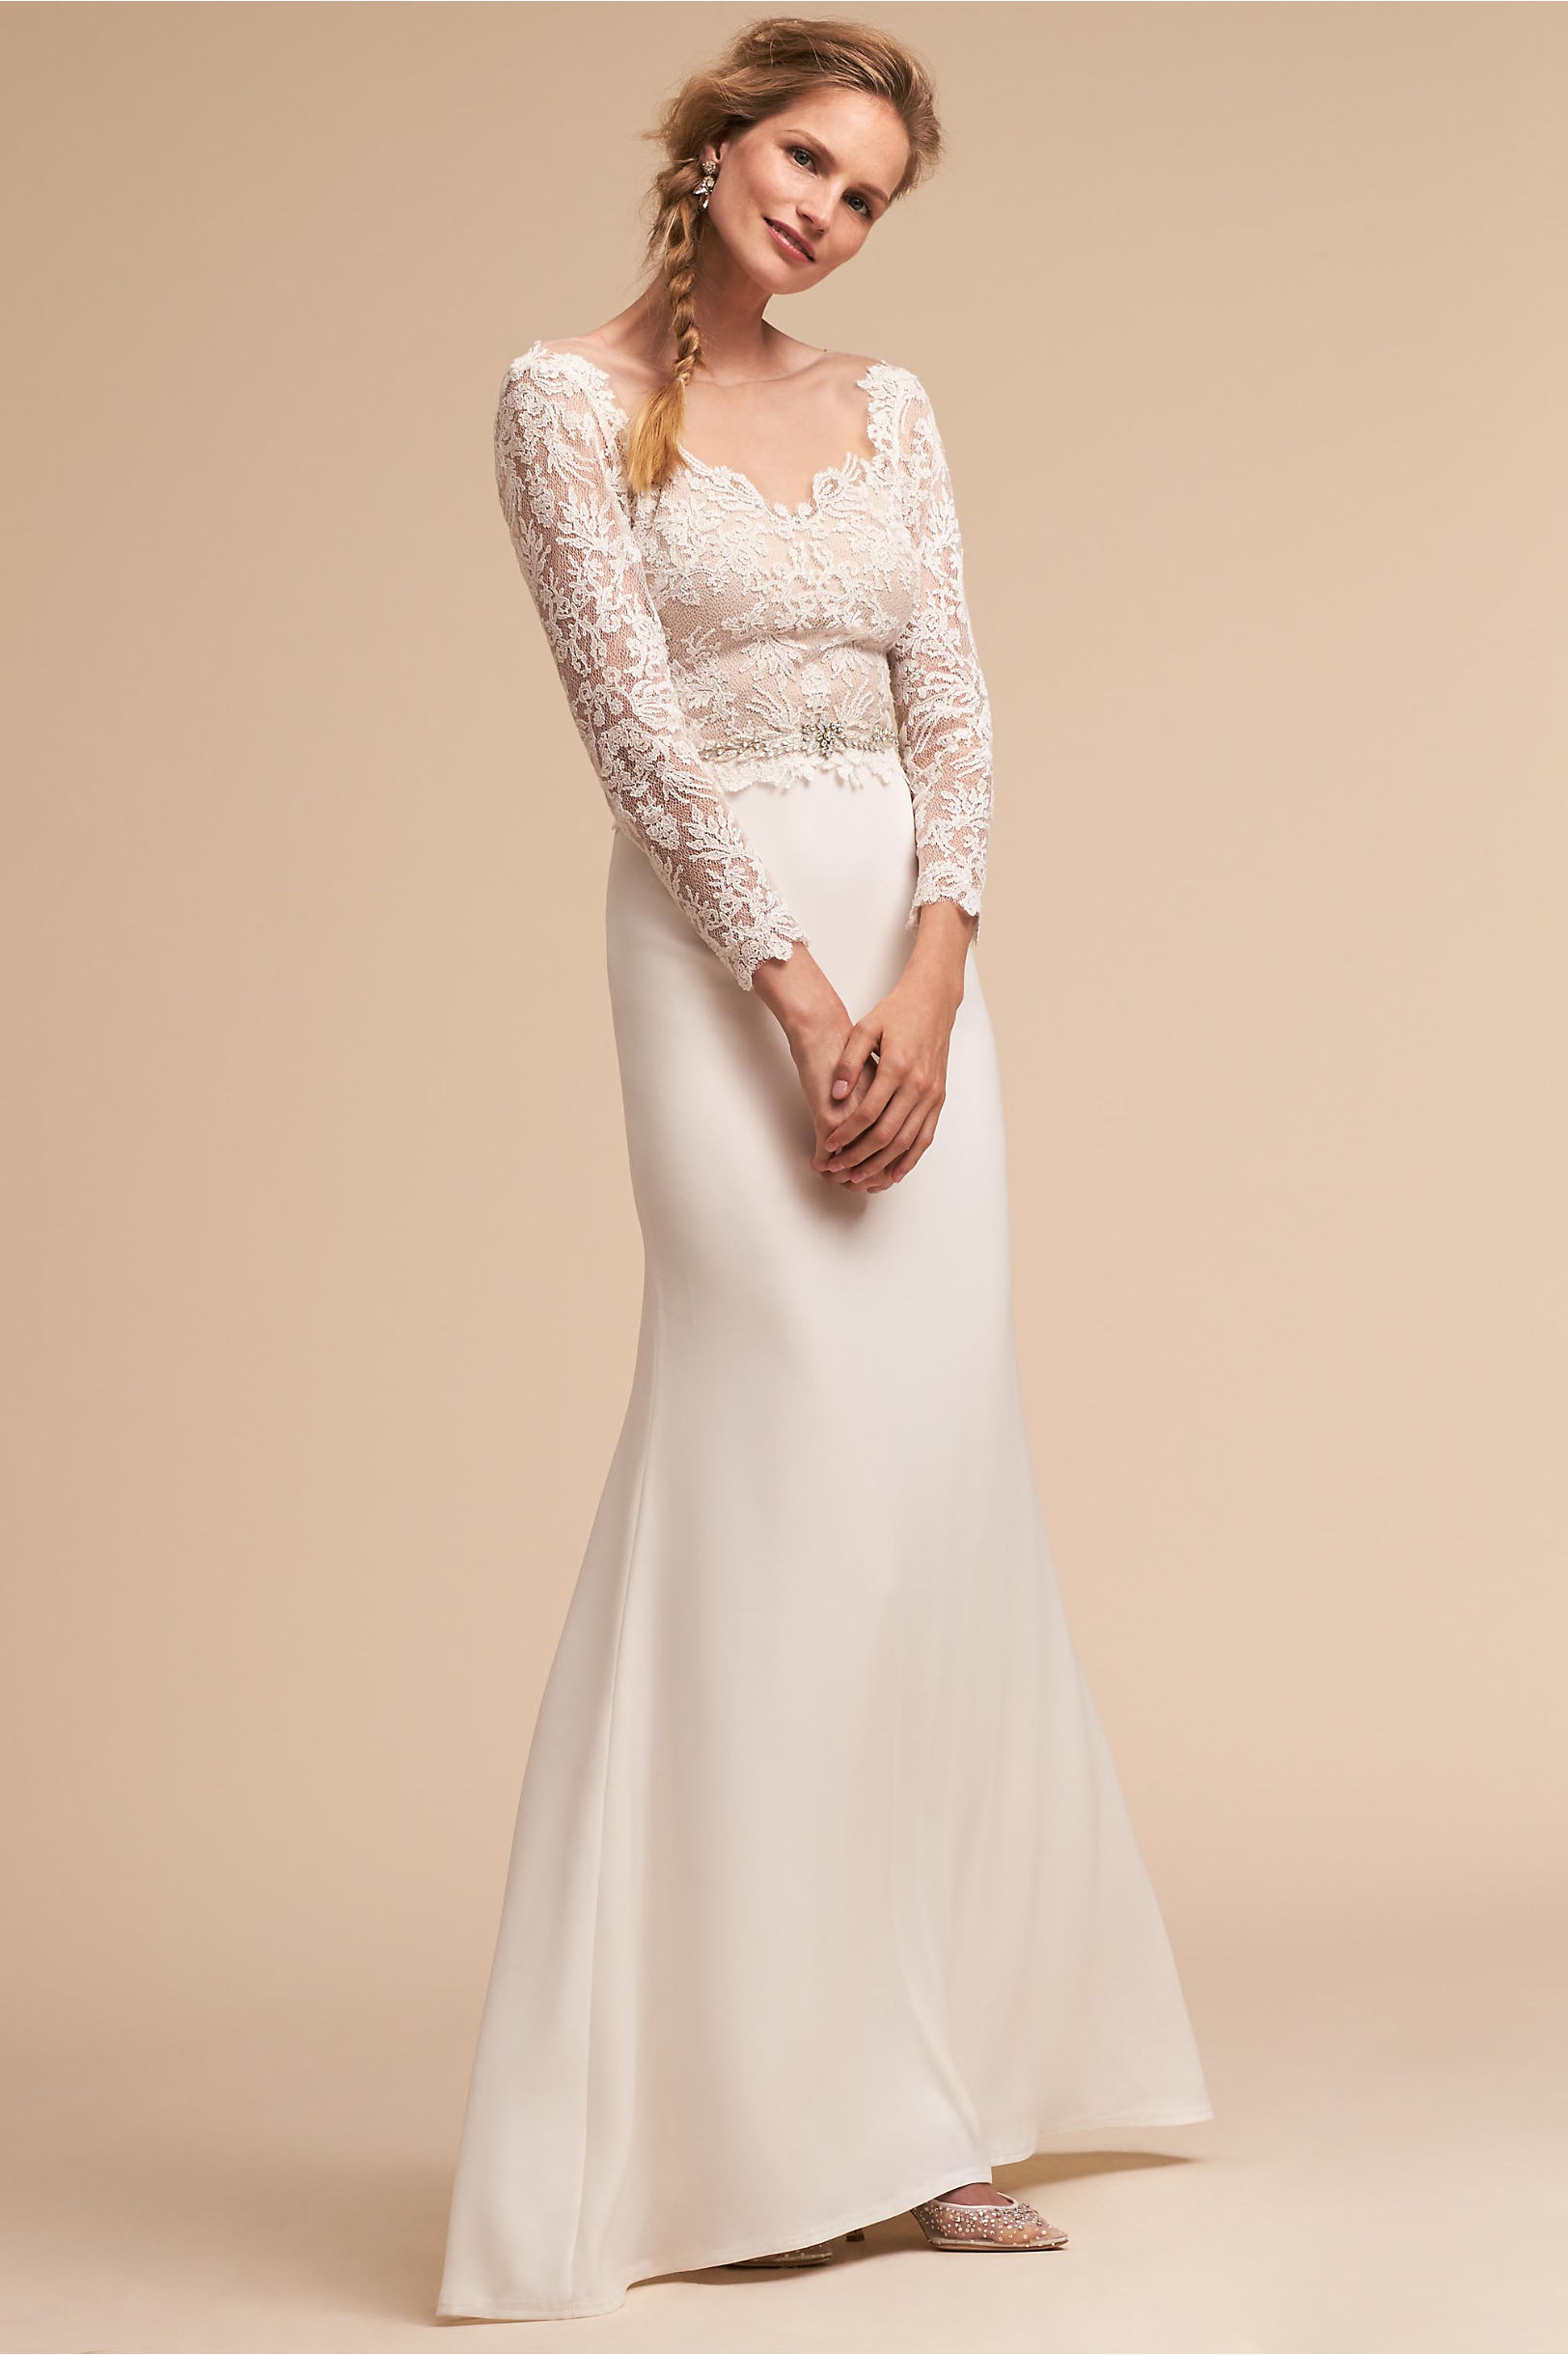 Vintage Inspired Wedding Dress | Vintage Style Wedding Dresses Langston Gown $700.00 AT vintagedancer.com